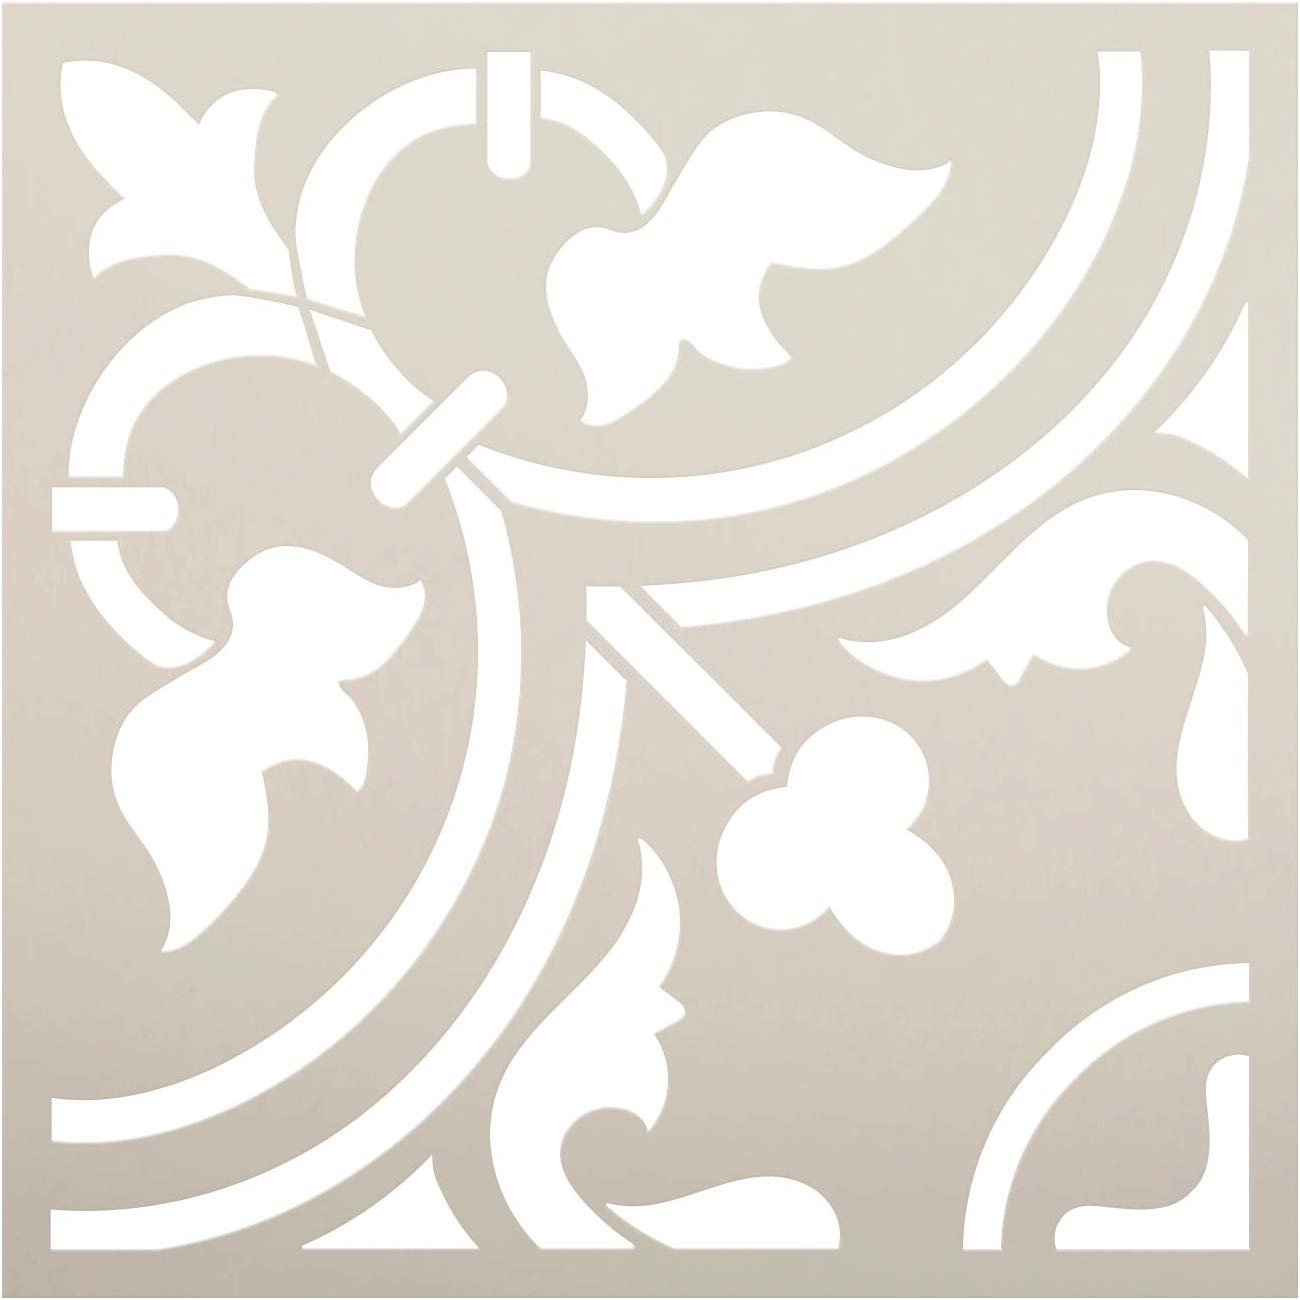 Moroccan Pattern Tile Stencil by StudioR12   DIY Furniture & Floor Painting for Kitchen or Bathroom   Reusable Template   Select Size